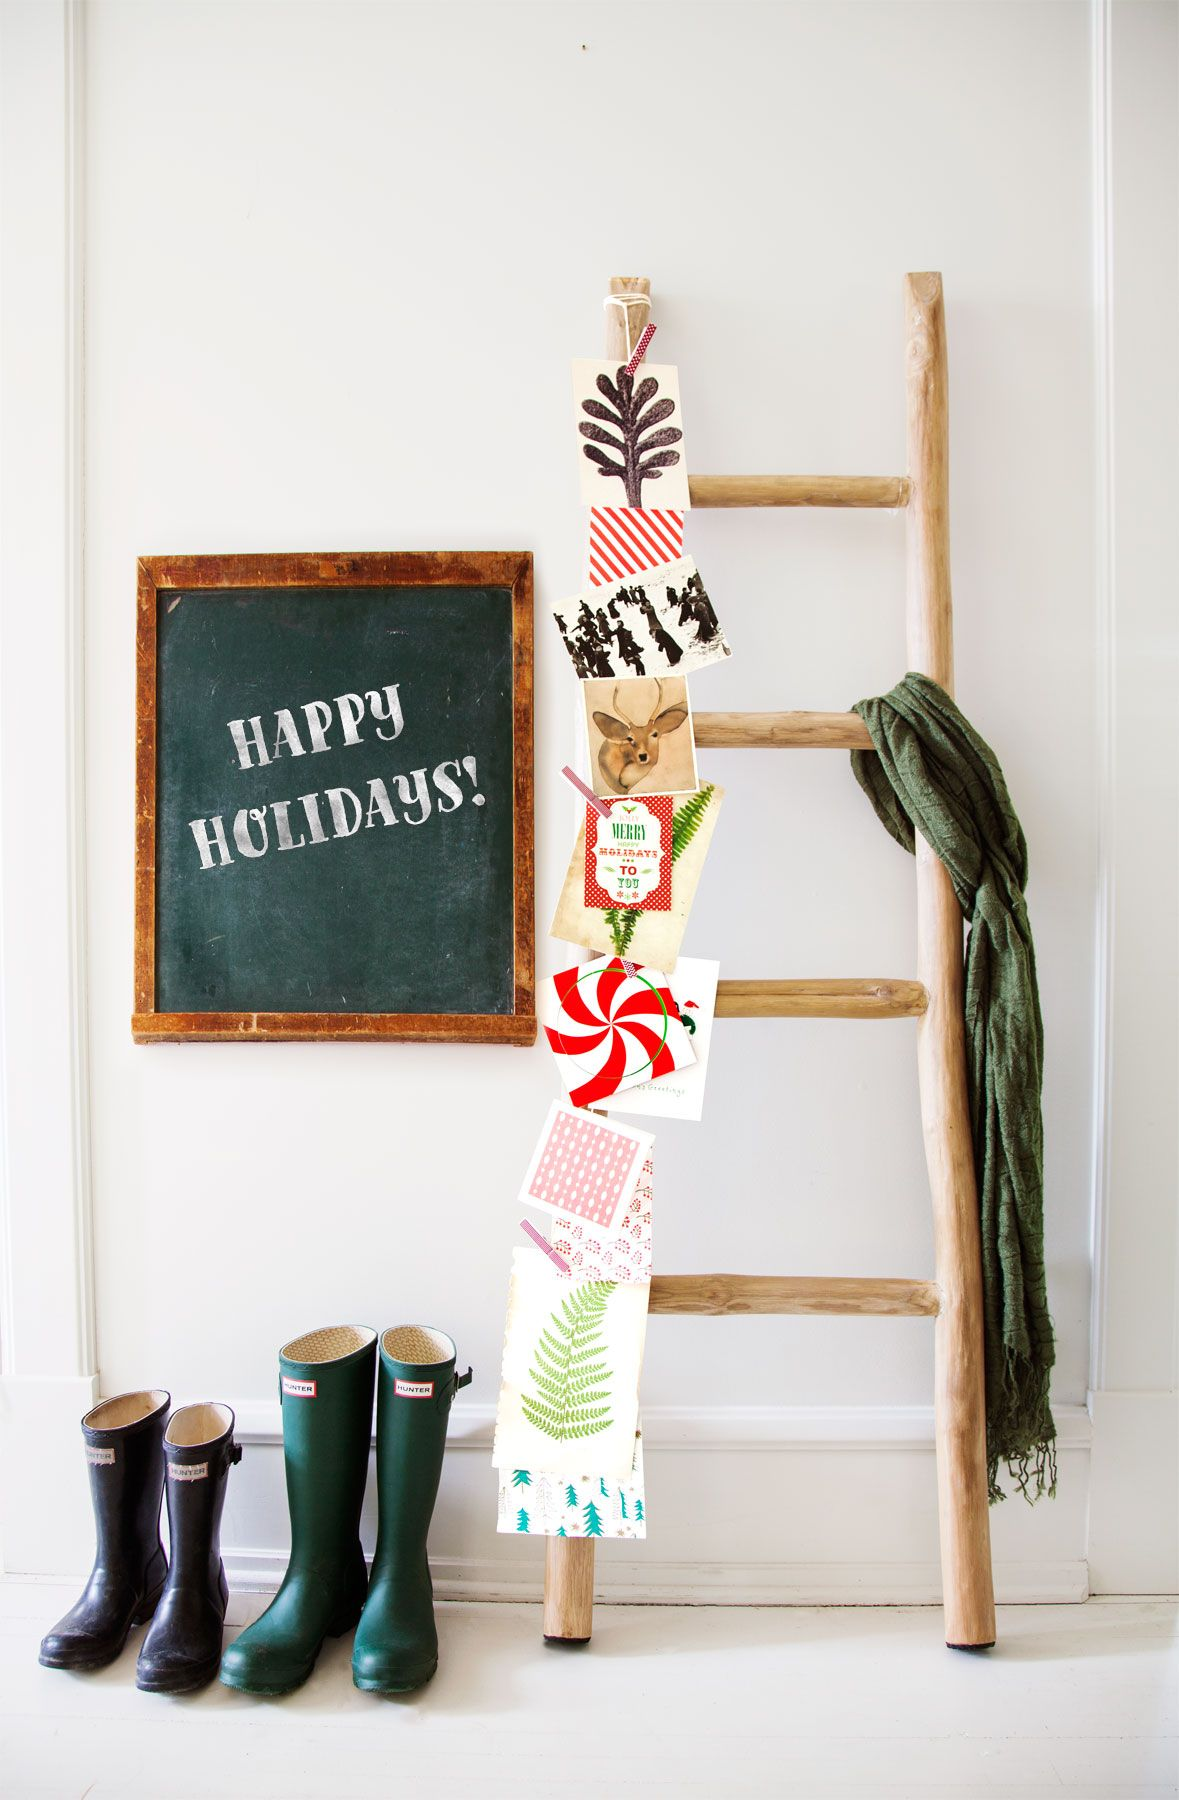 50 Christmas Home Decorating Ideas - Beautiful Christmas Decorations